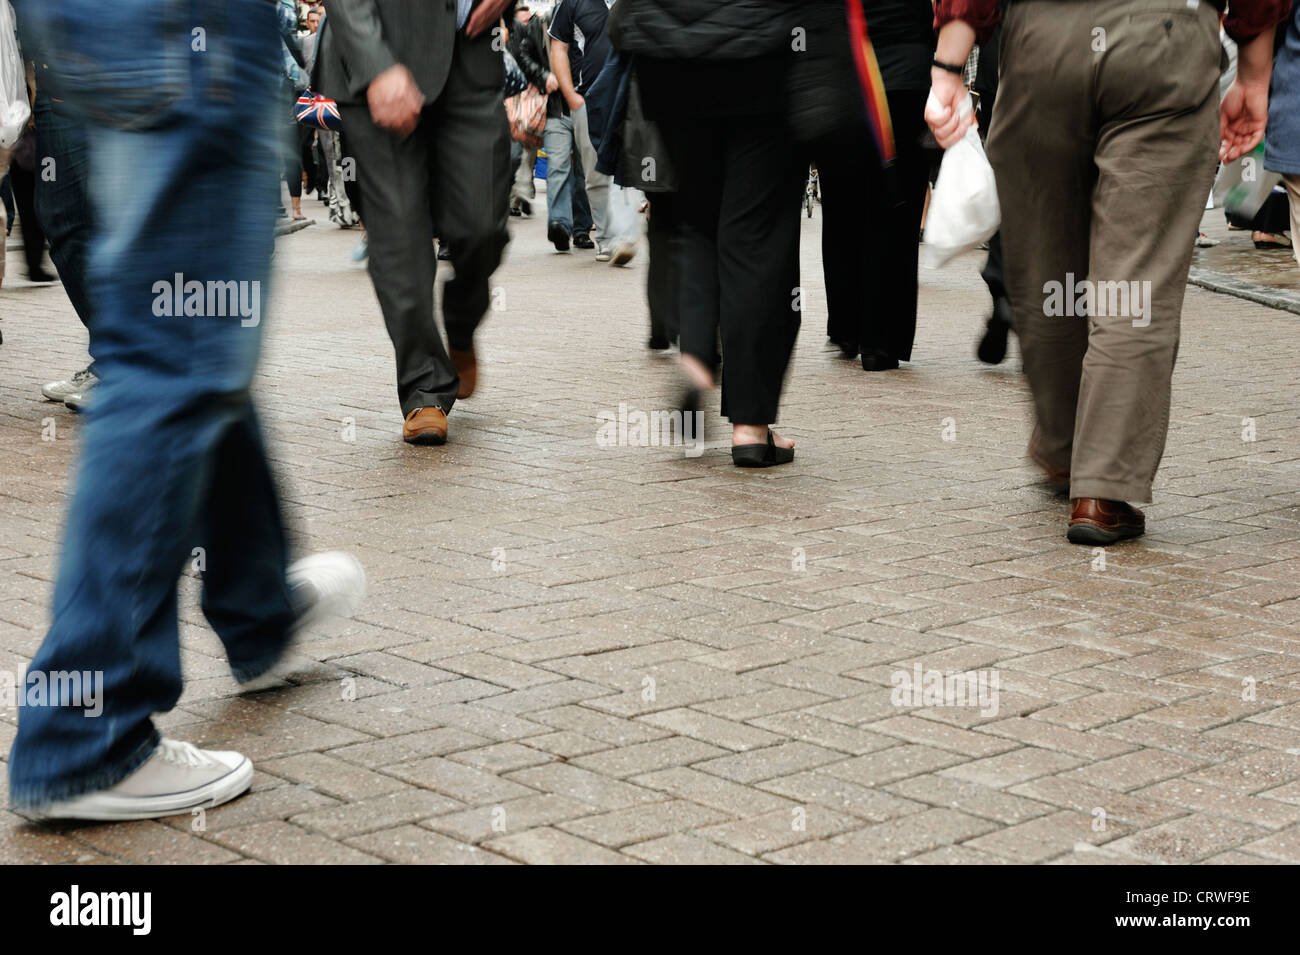 Crowds of people with motion blur - Stock Image